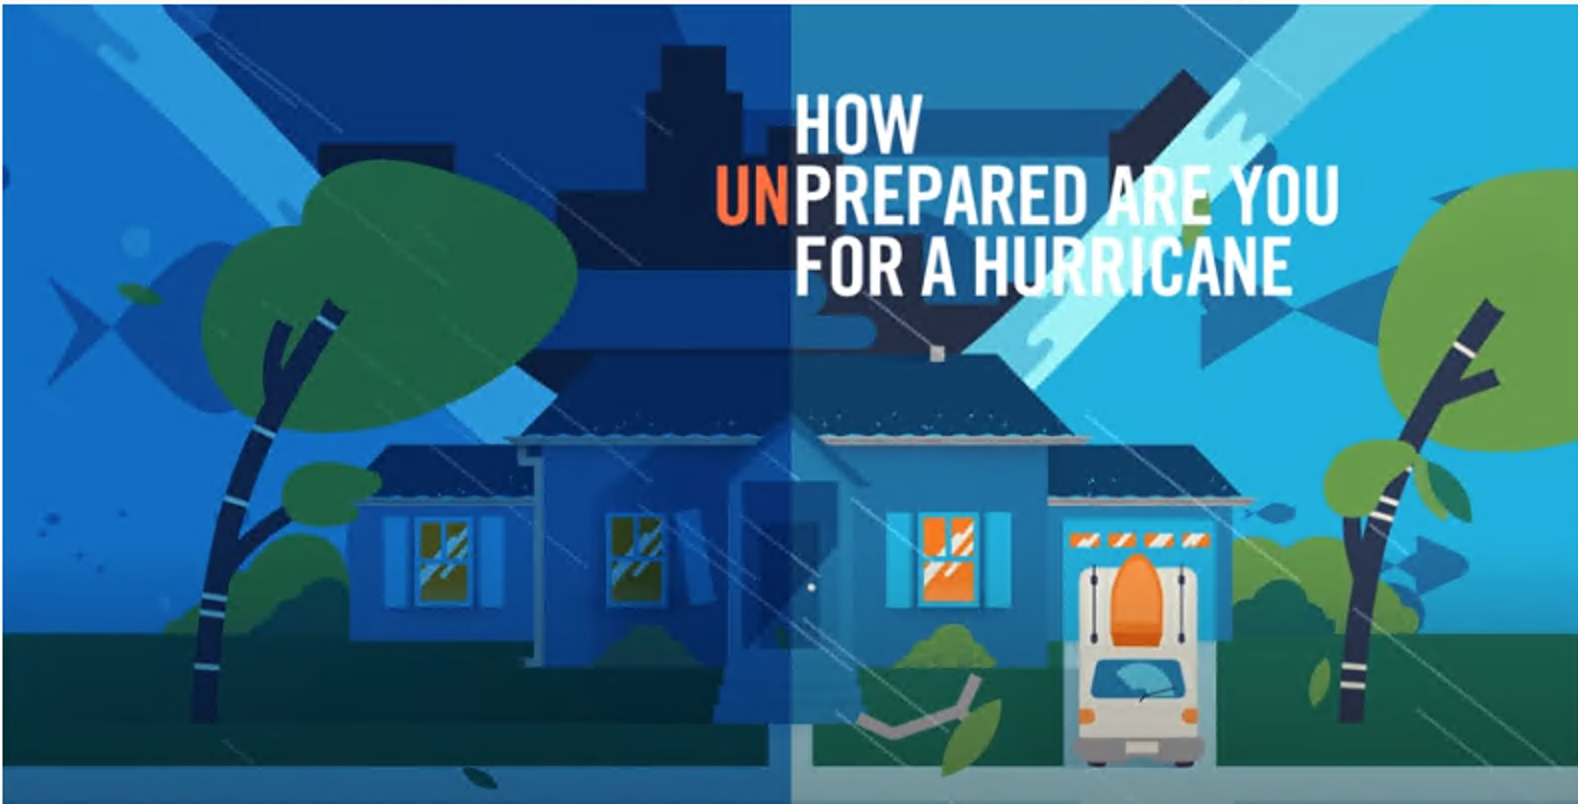 How Prepared Are You for a Hurricane?